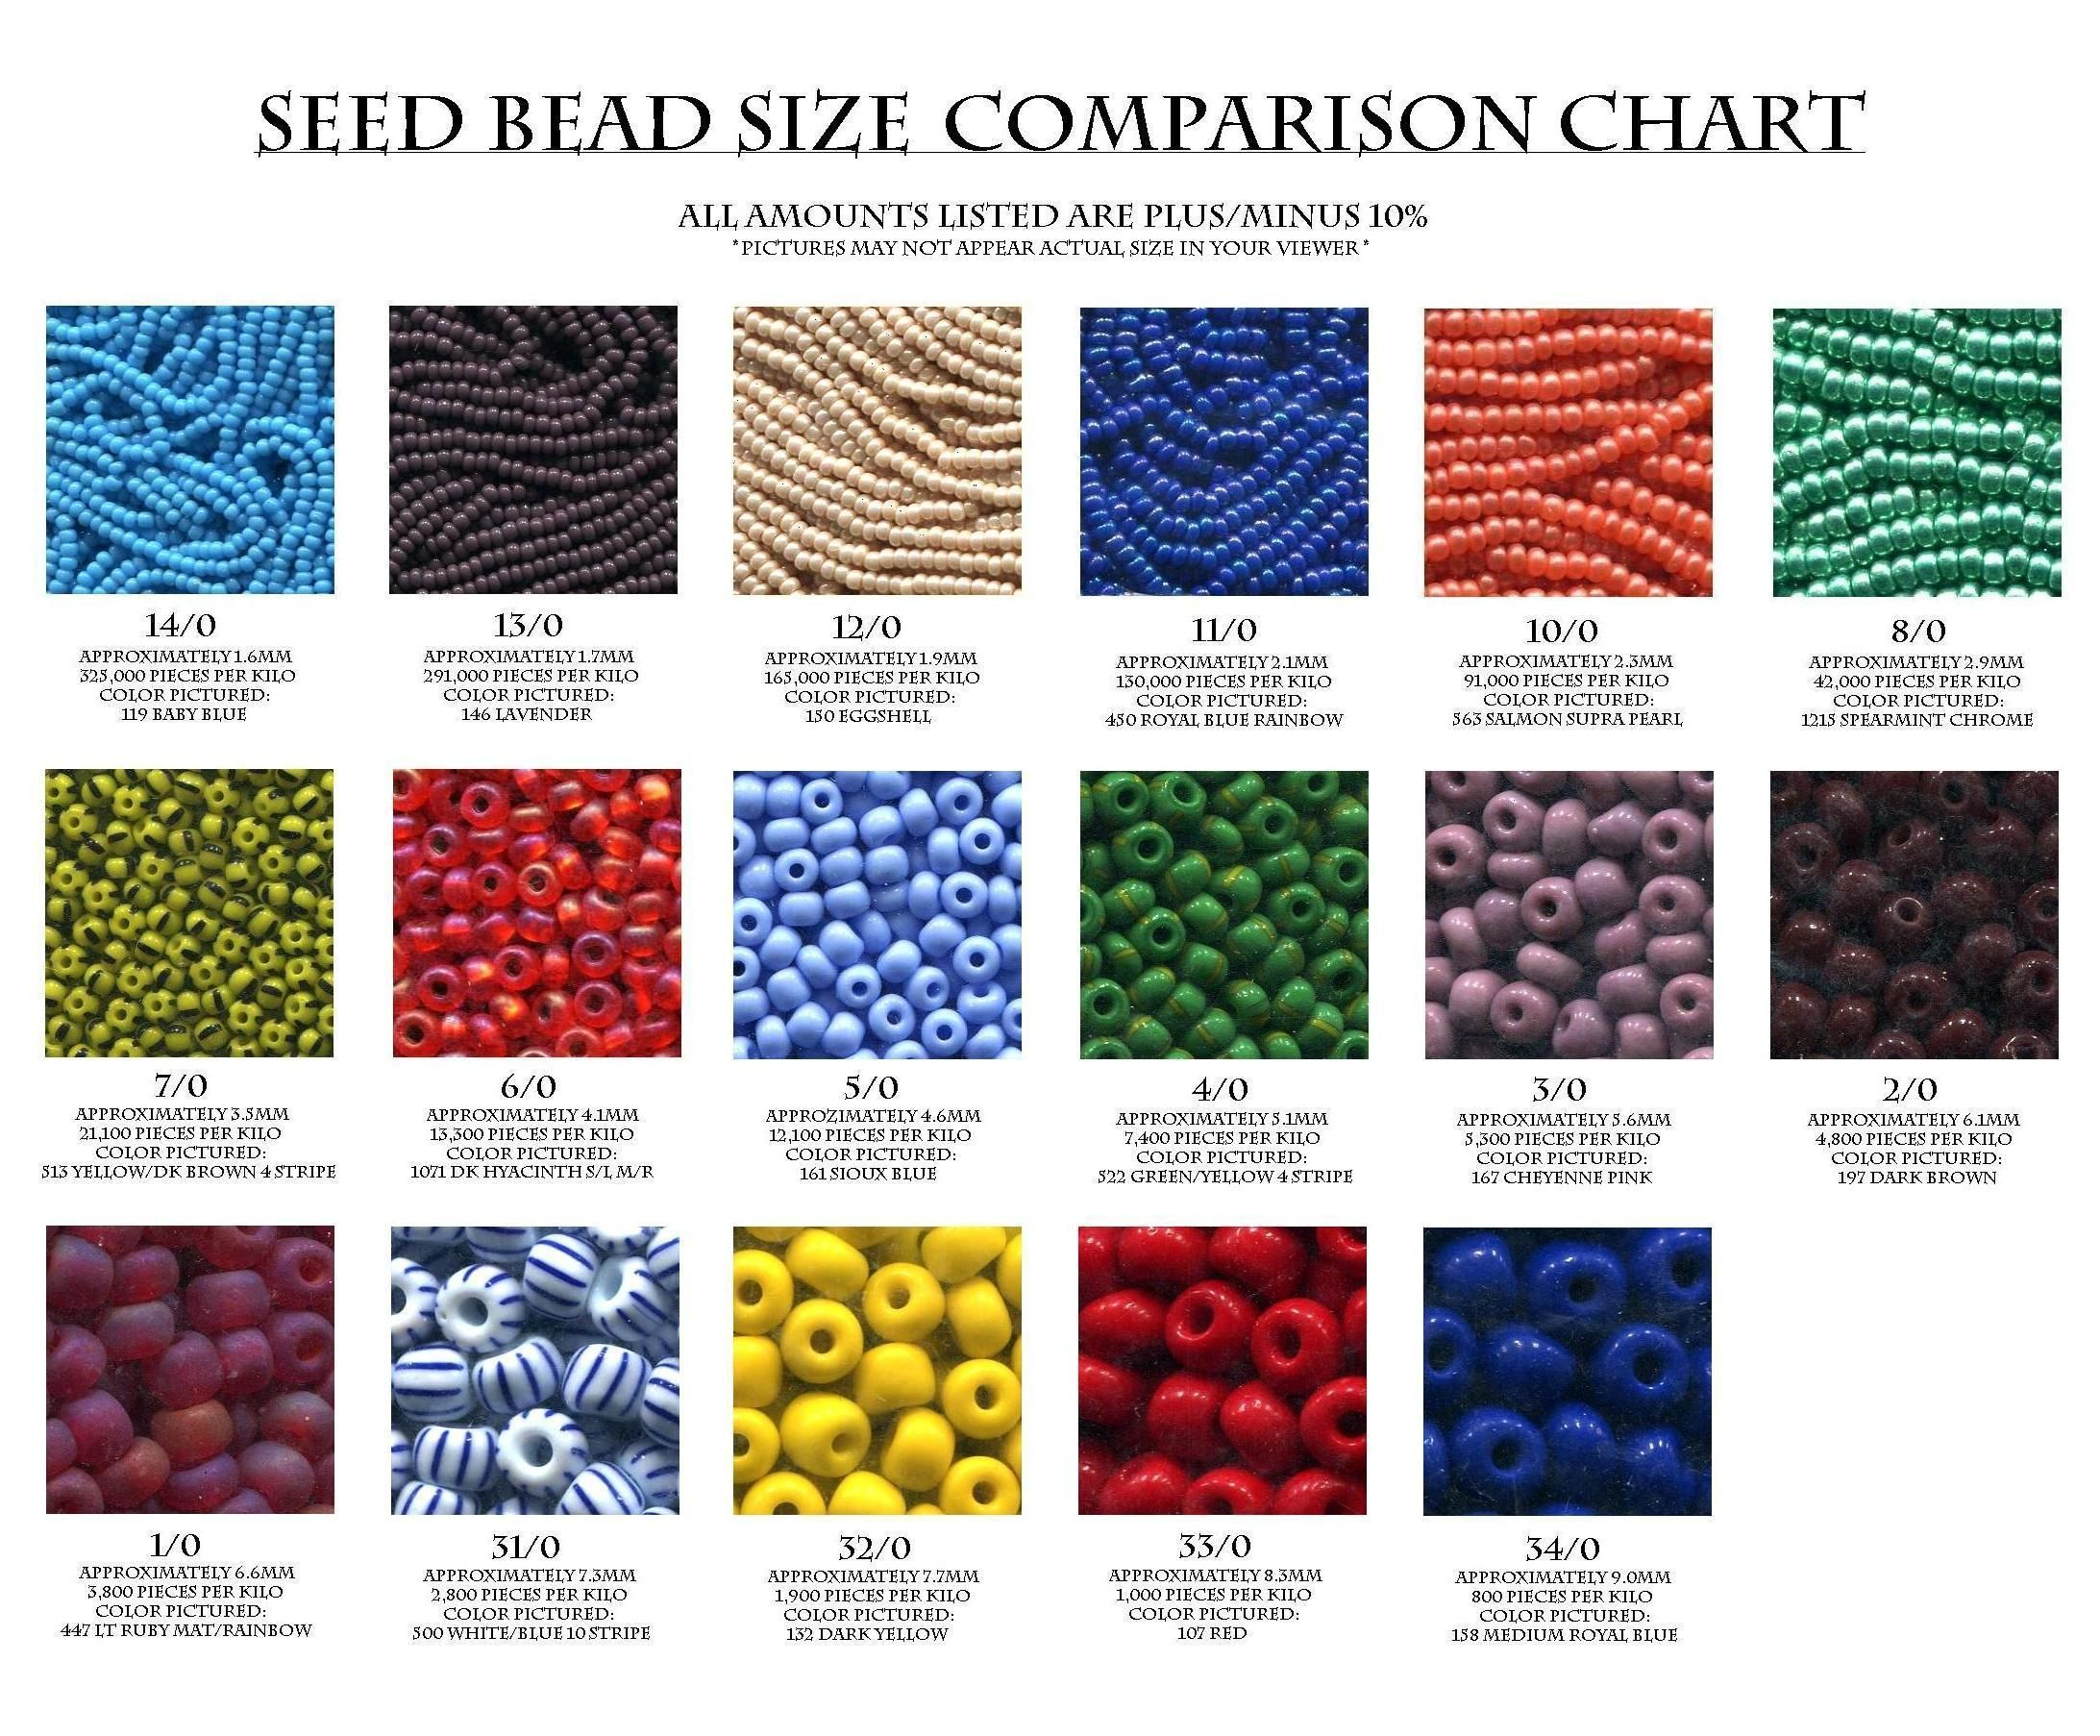 graphic regarding Printable Seed Bead Size Chart identified as Seed Bead Dimensions Comparison Chart Equipment Bead measurement chart